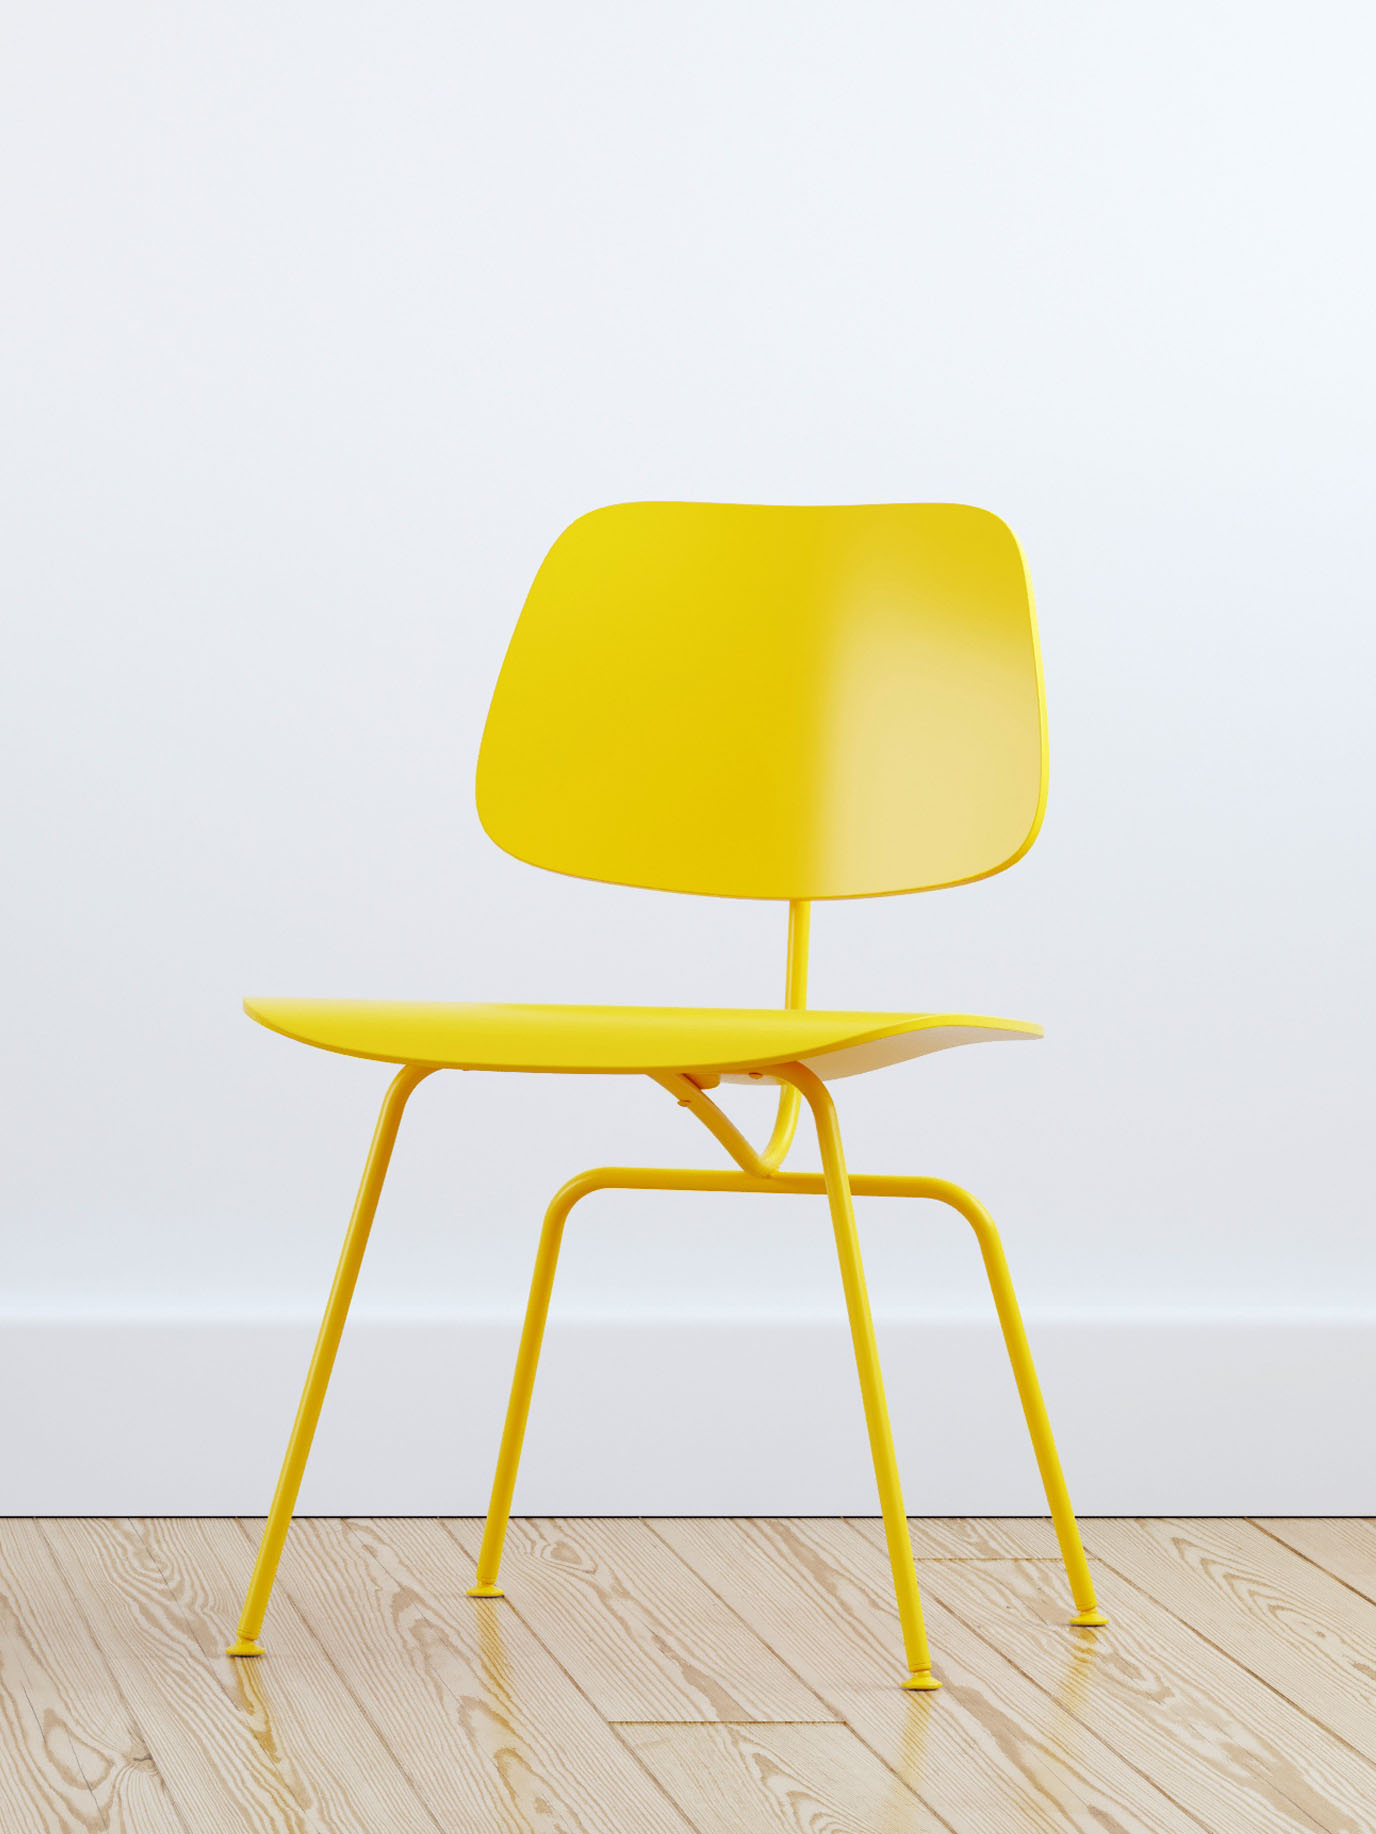 one-profile-chair-3.jpg